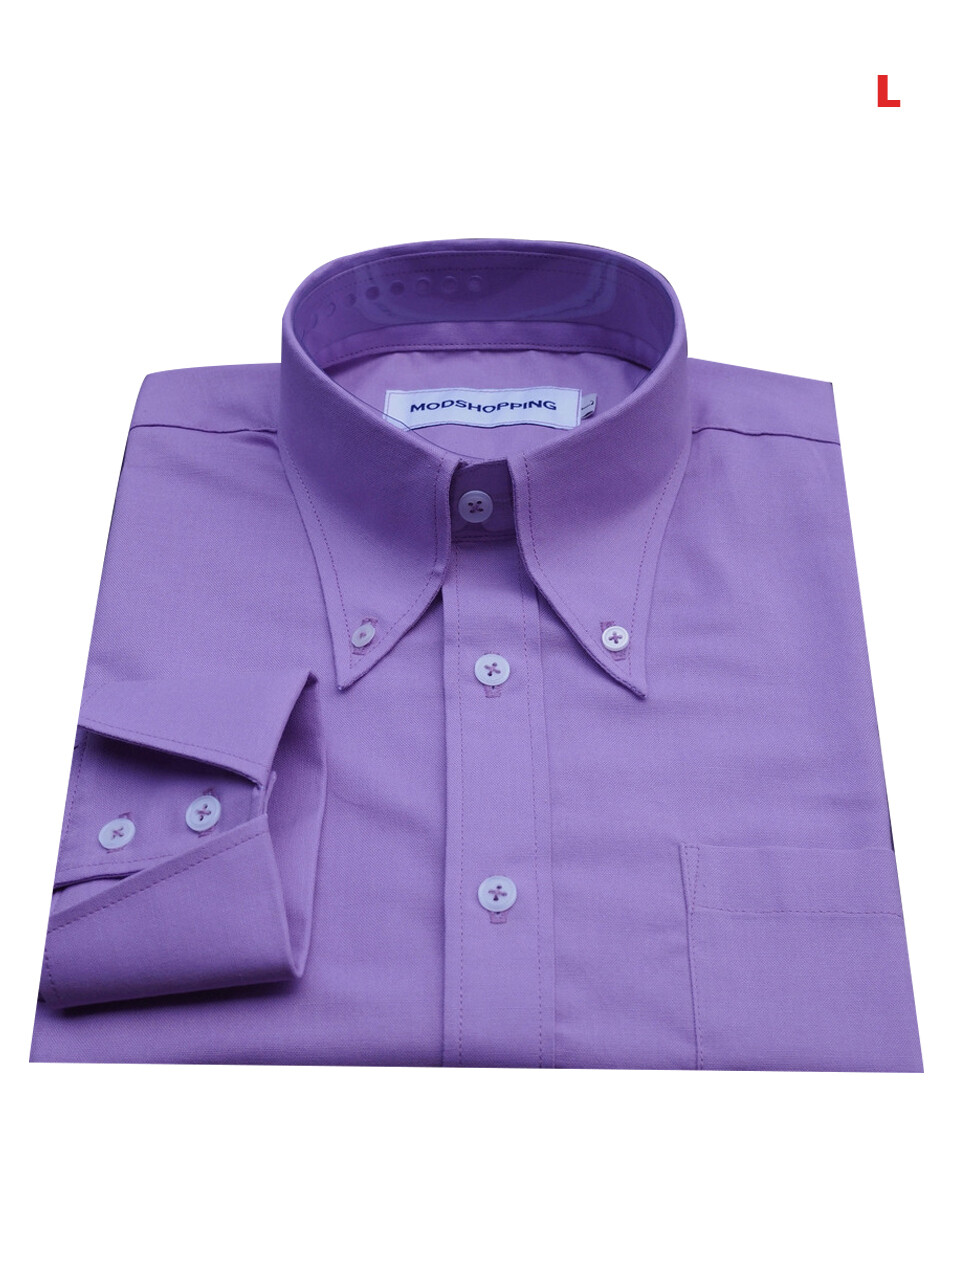 This Shirt Only.  Purple Color Shirt